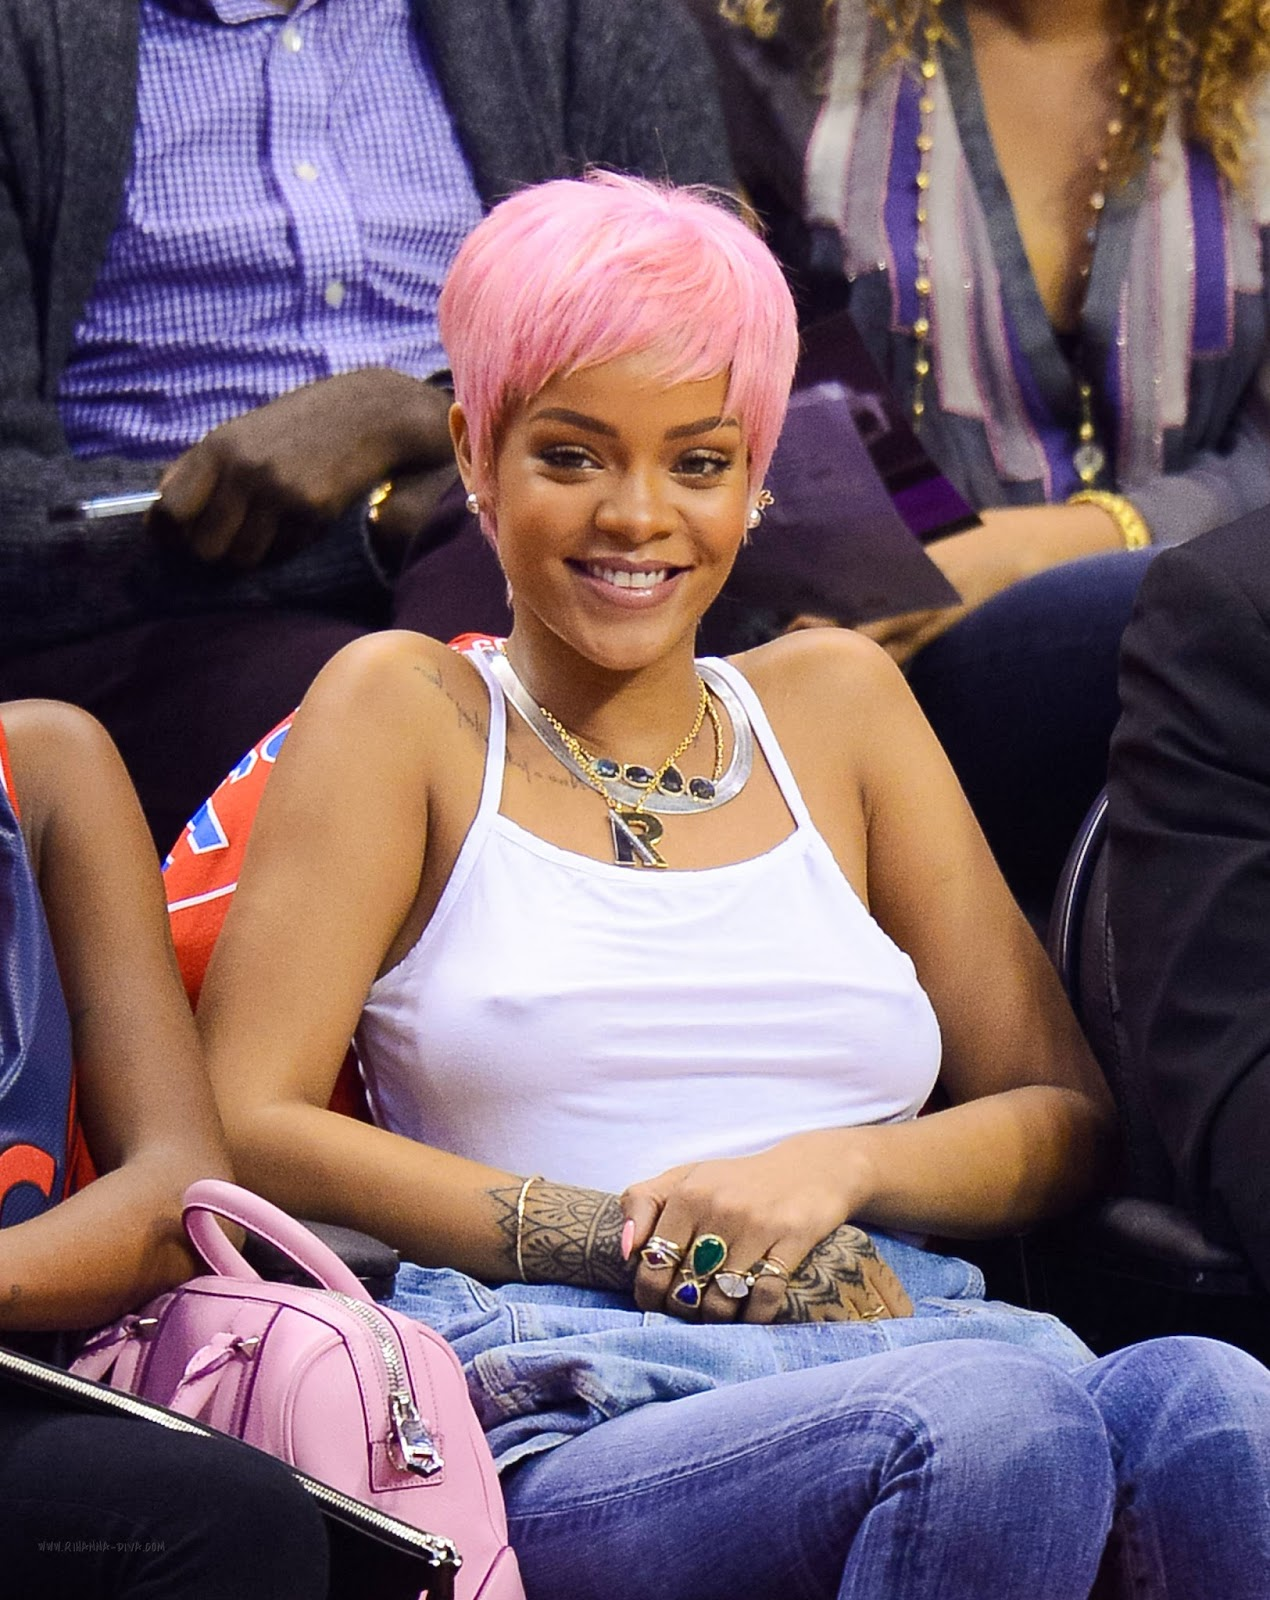 Rihanna Press Her Boobs at Clippers Game in Los Angeles